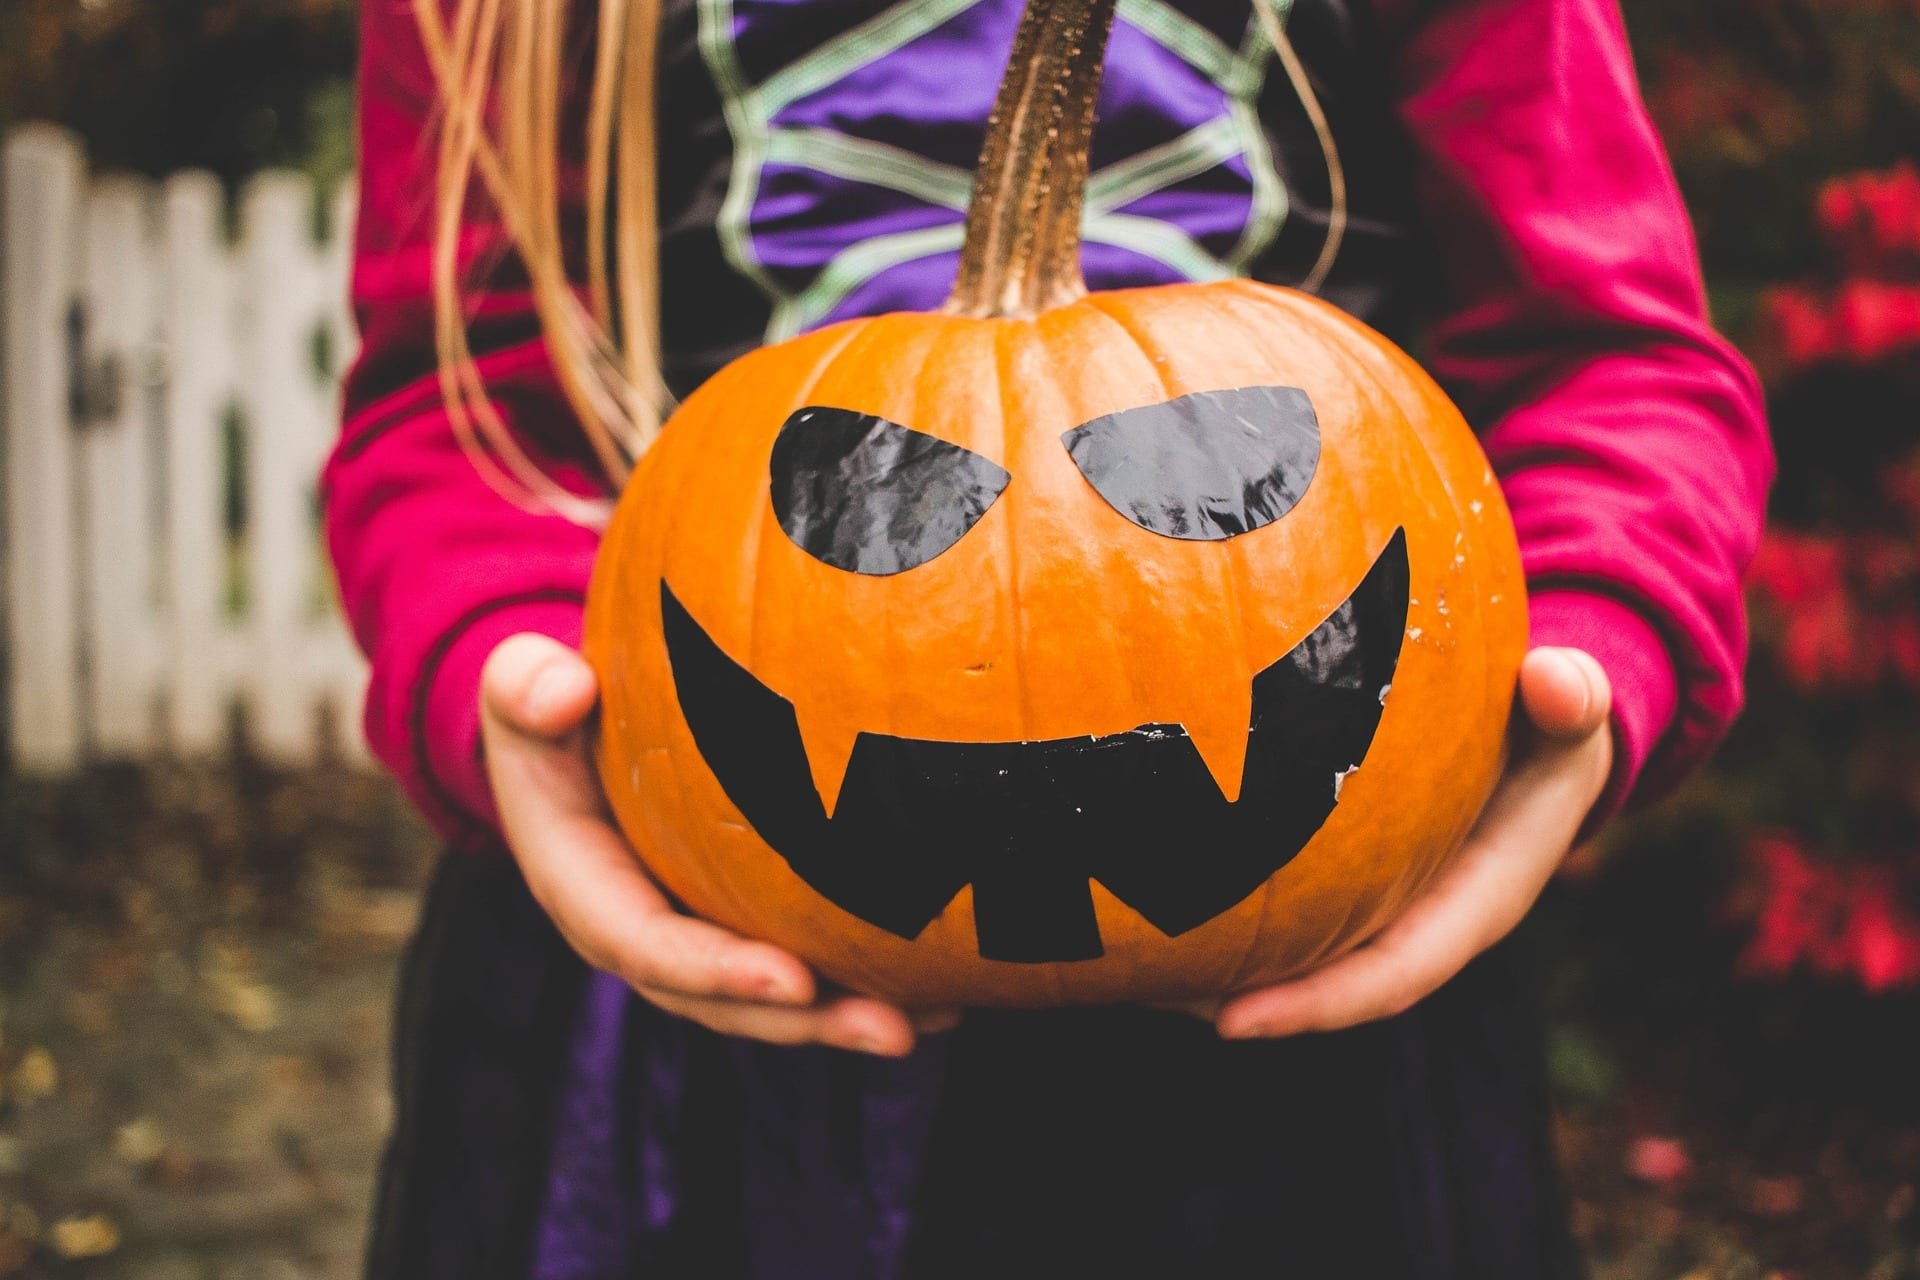 Trick or treat: Your best bets for Halloween fun in B'ville